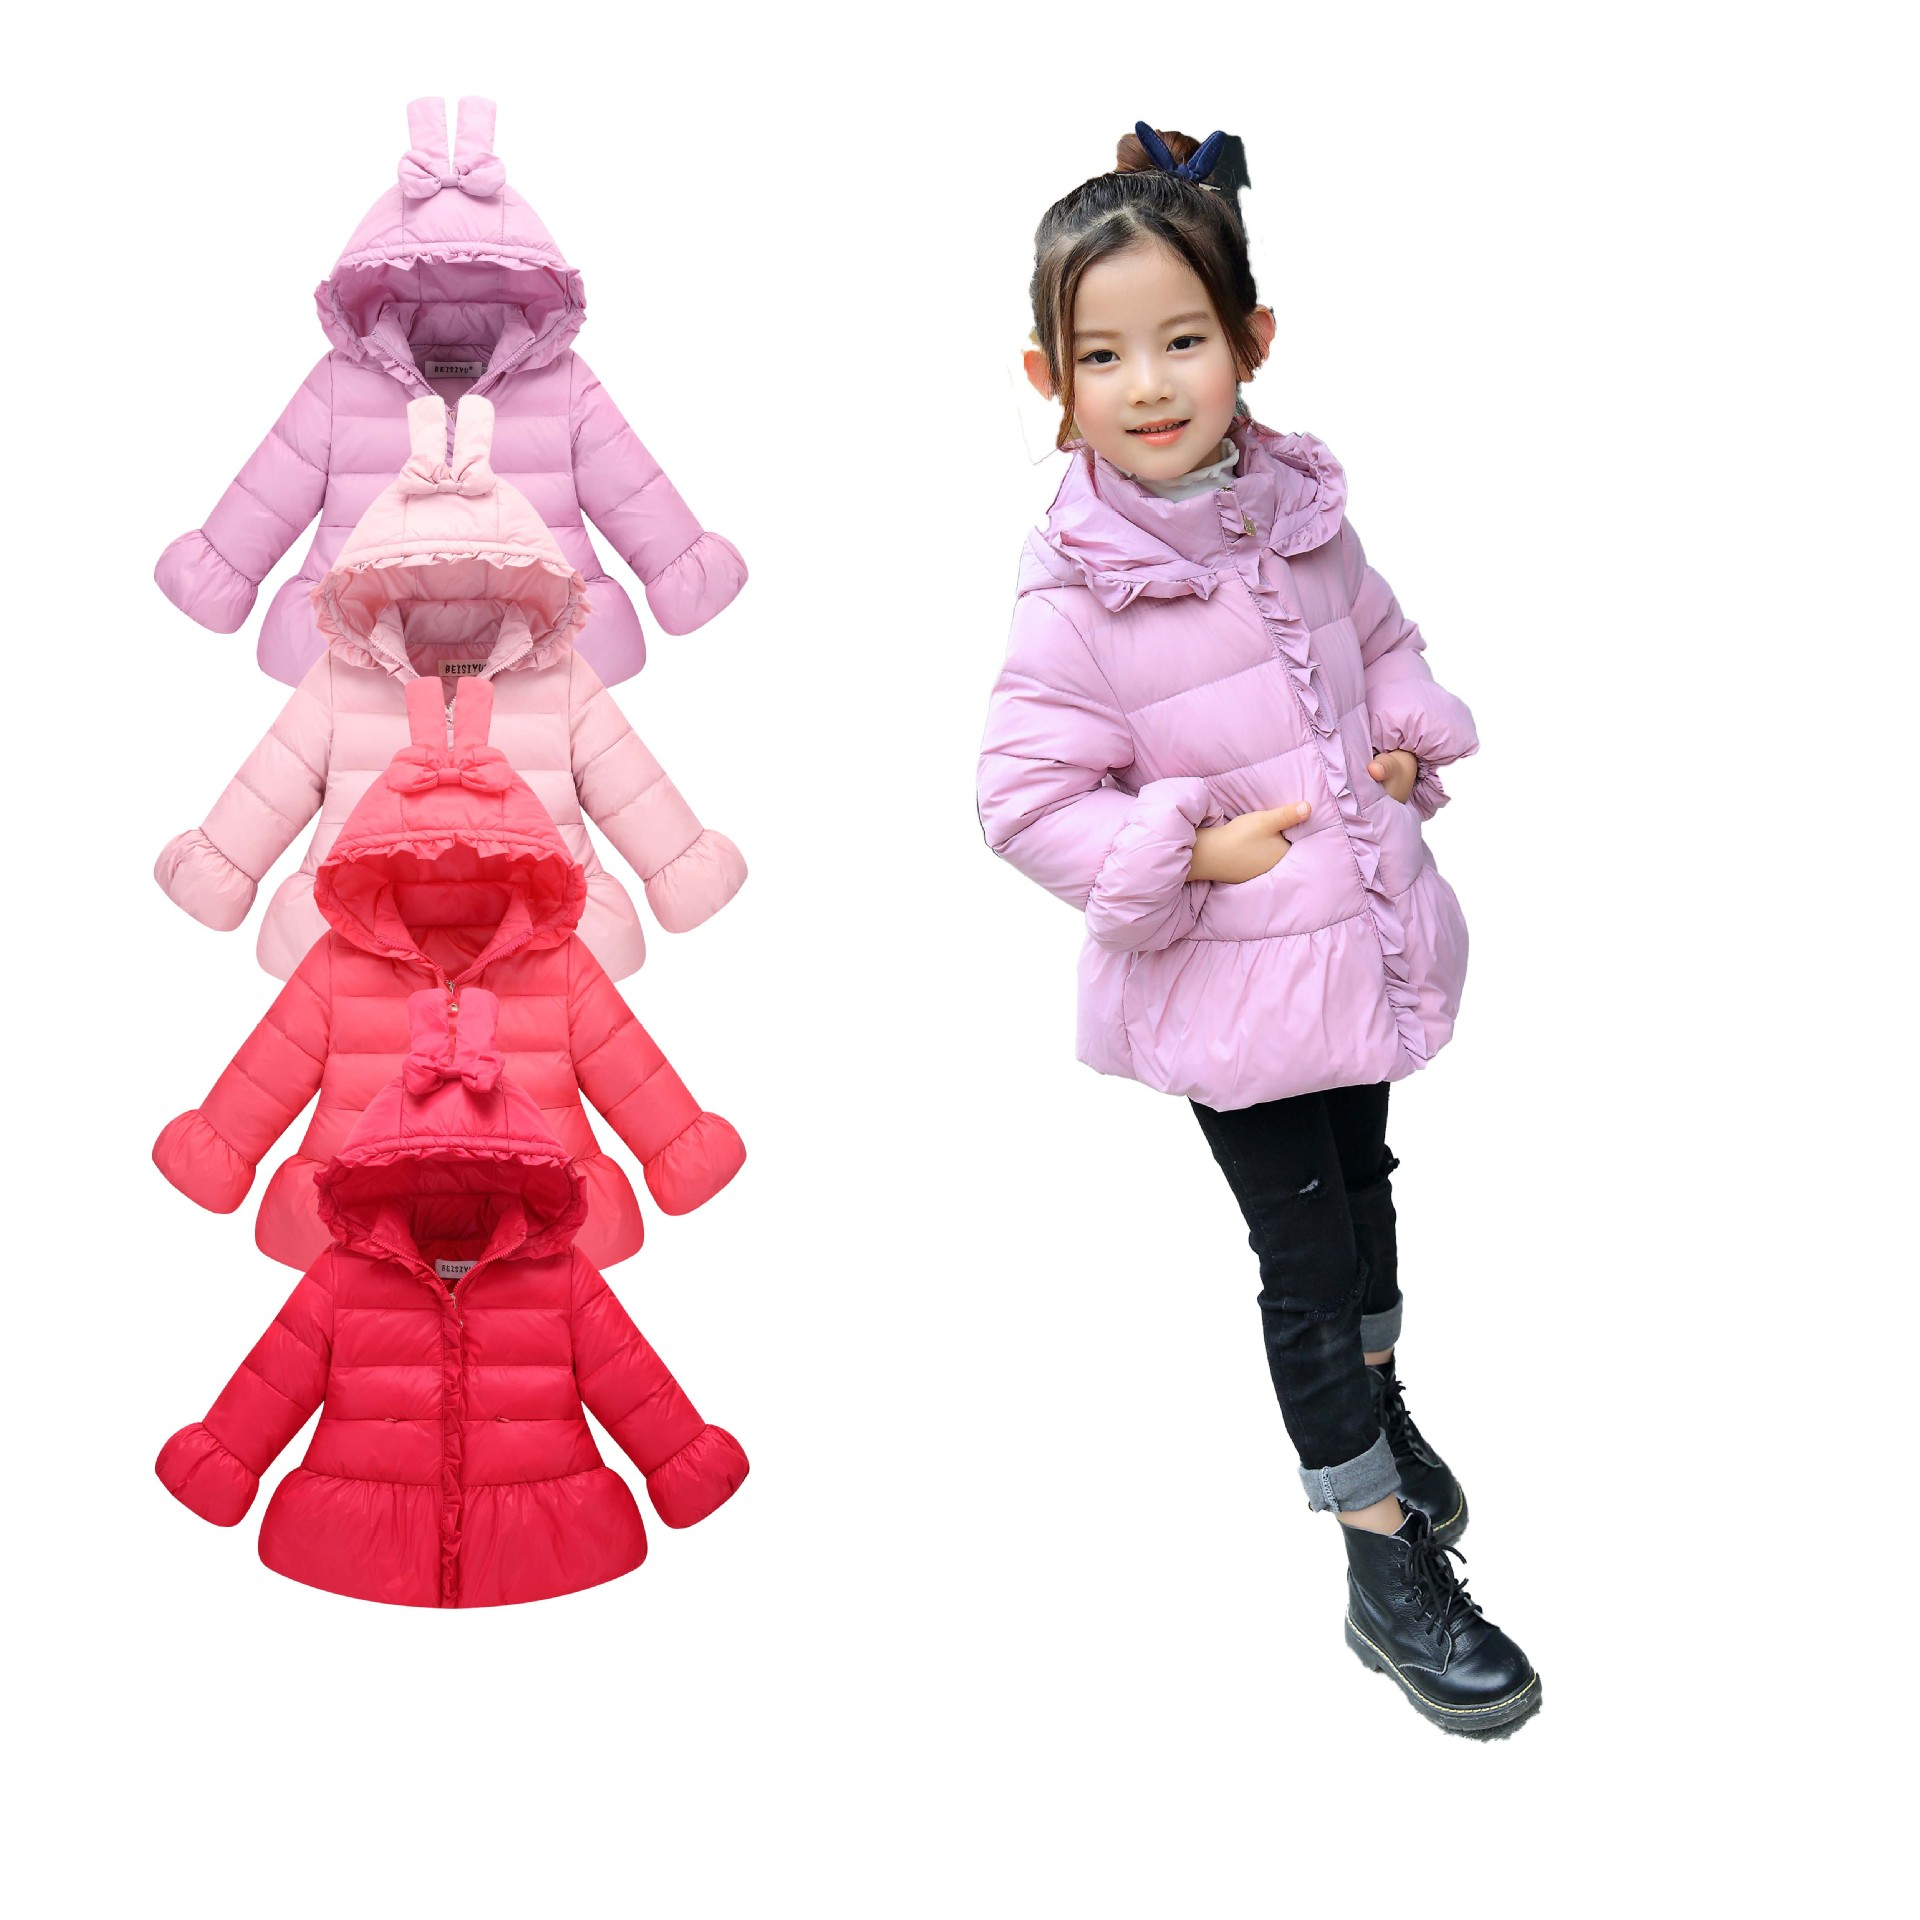 2017 Winter Boys Girls Sets Kids Cotton-Padded Coat Clothing Suit Children Cashmere Warm Baby rabbit ears Creative coat girls 2015 new autumn winter warm boys girls suit children s sets baby boys hooded clothing set girl kids sets sweatshirts and pant